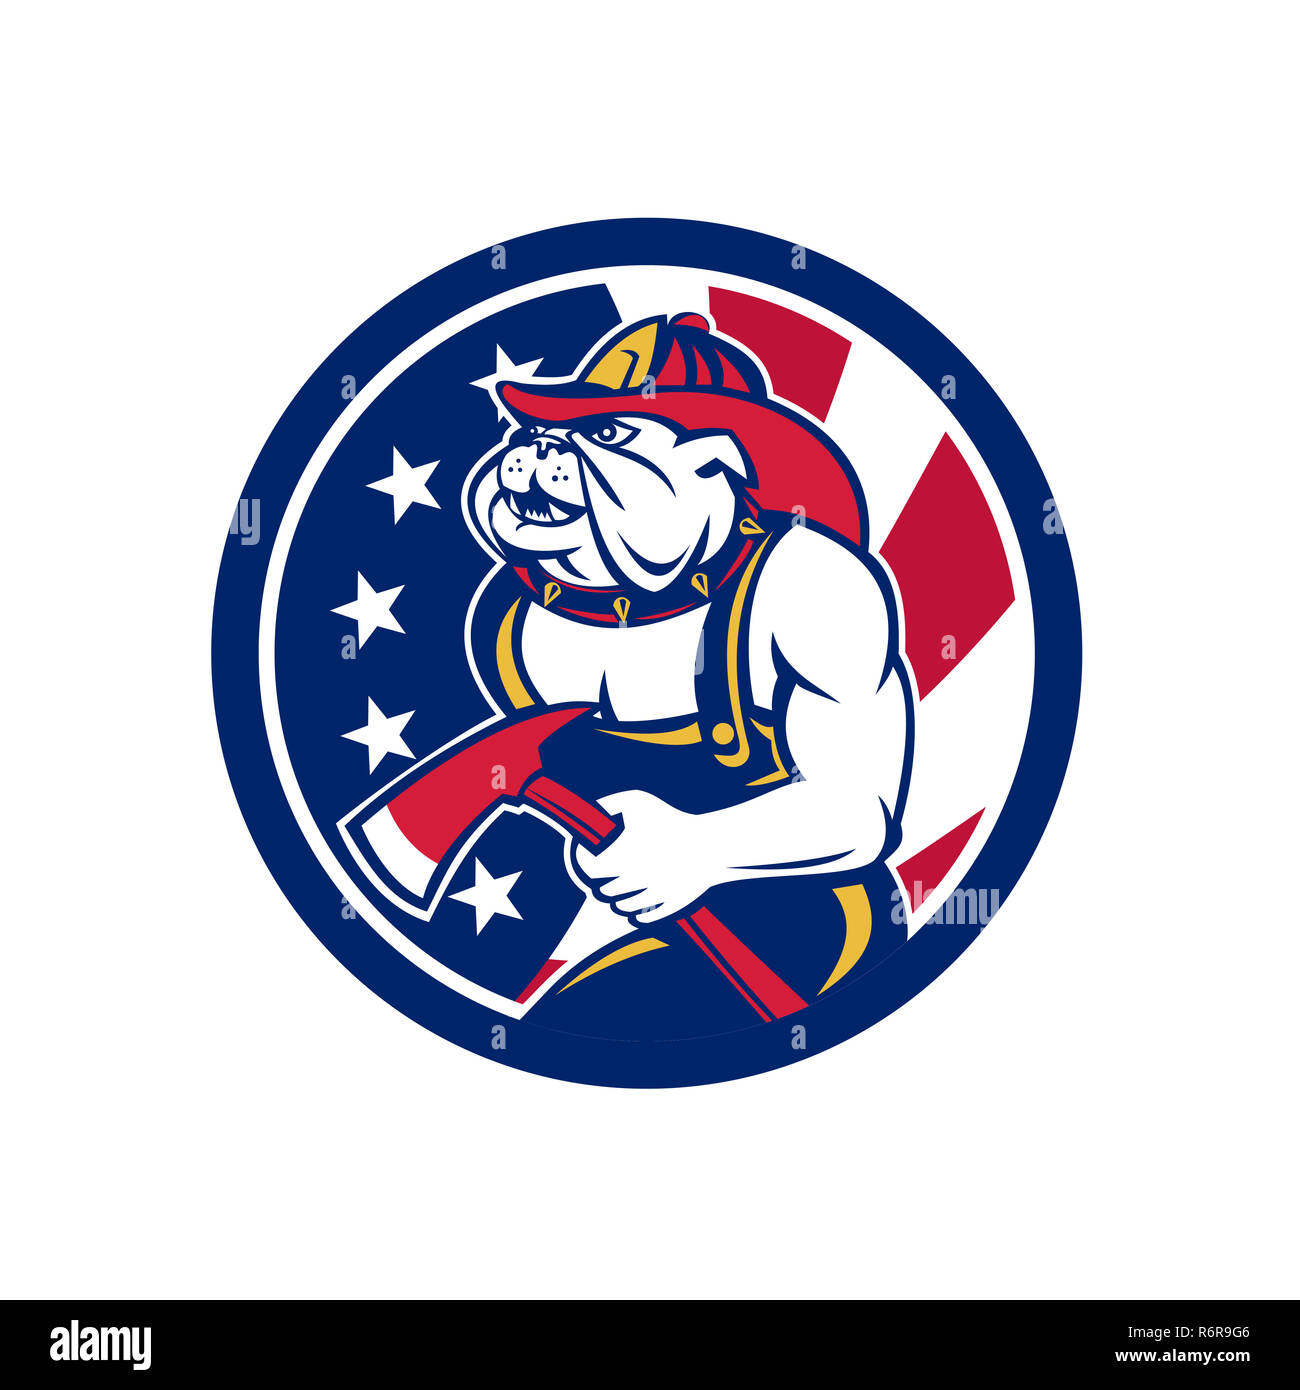 903bdce6cd4 Bulldog Fireman American Flag Icon Stock Photo  227935126 - Alamy